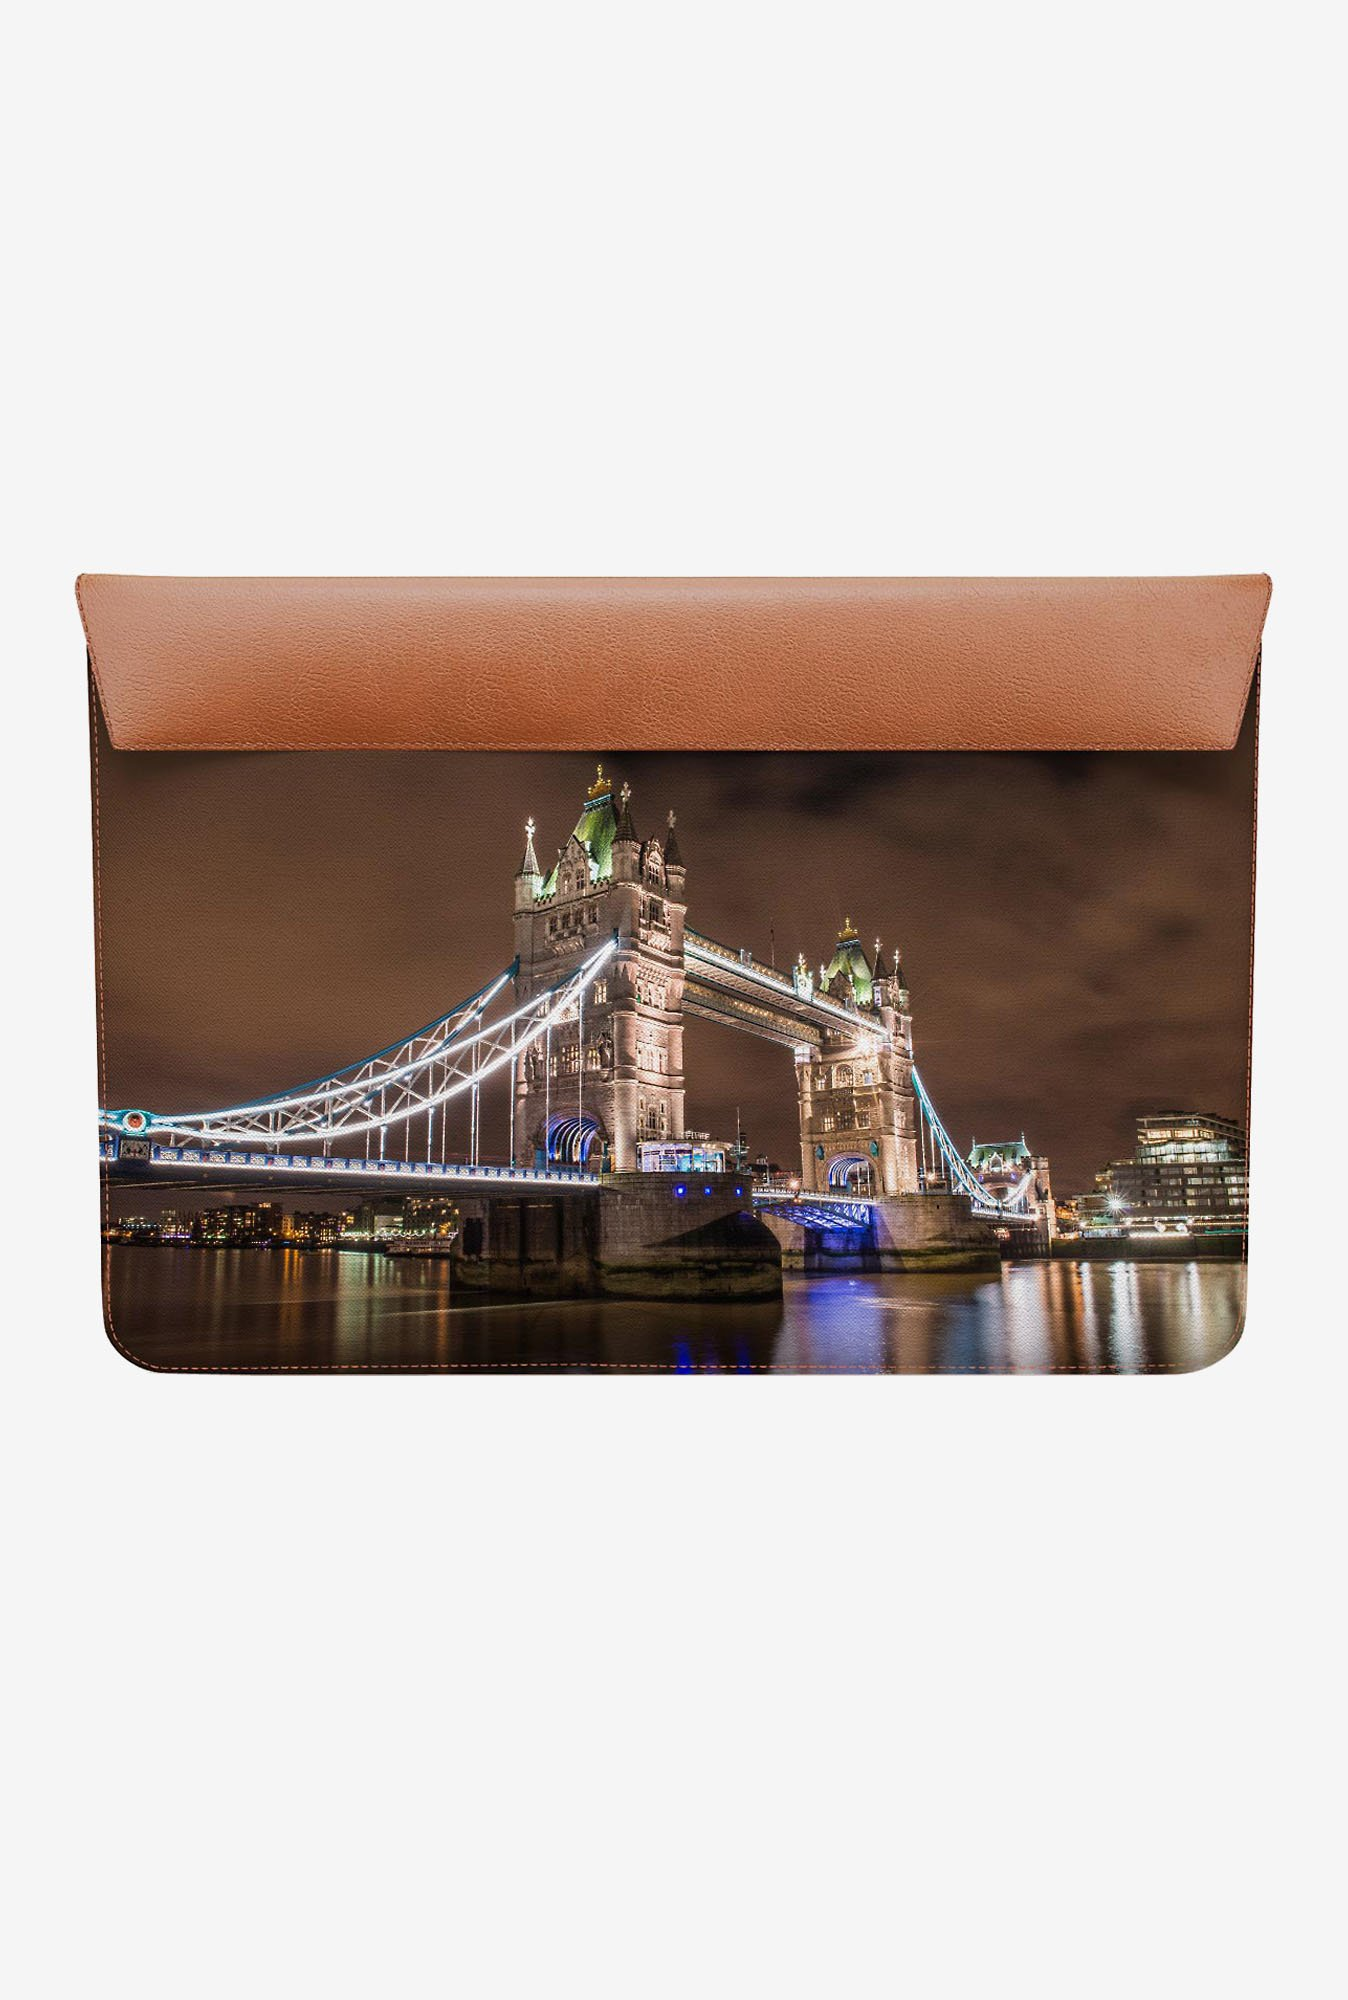 DailyObjects Bridge Lit up MacBook Air 13 Envelope Sleeve